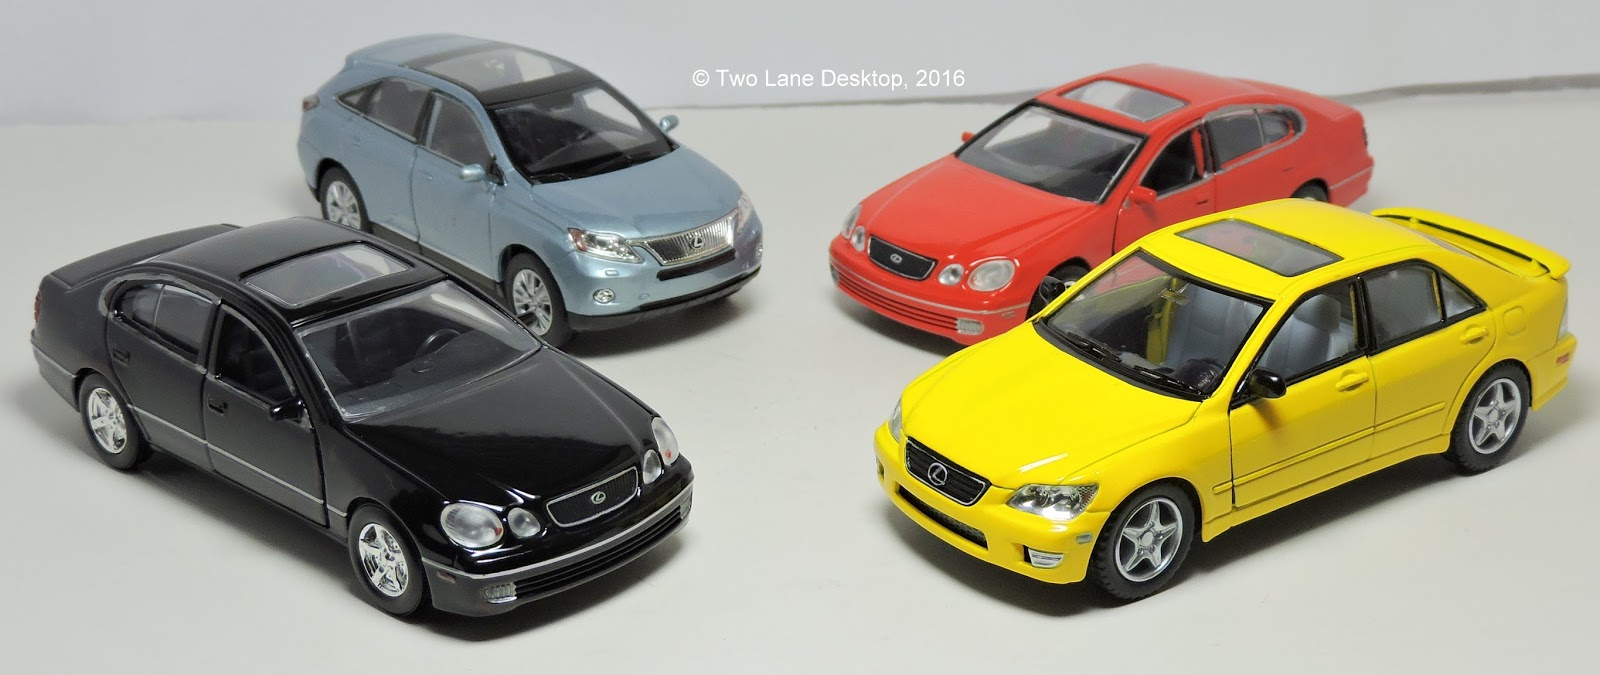 in 1989 toyota set the luxury car market on fire with the new lexus brand aimed at challenging the best from germany while at the same time teaching them a  [ 1600 x 675 Pixel ]